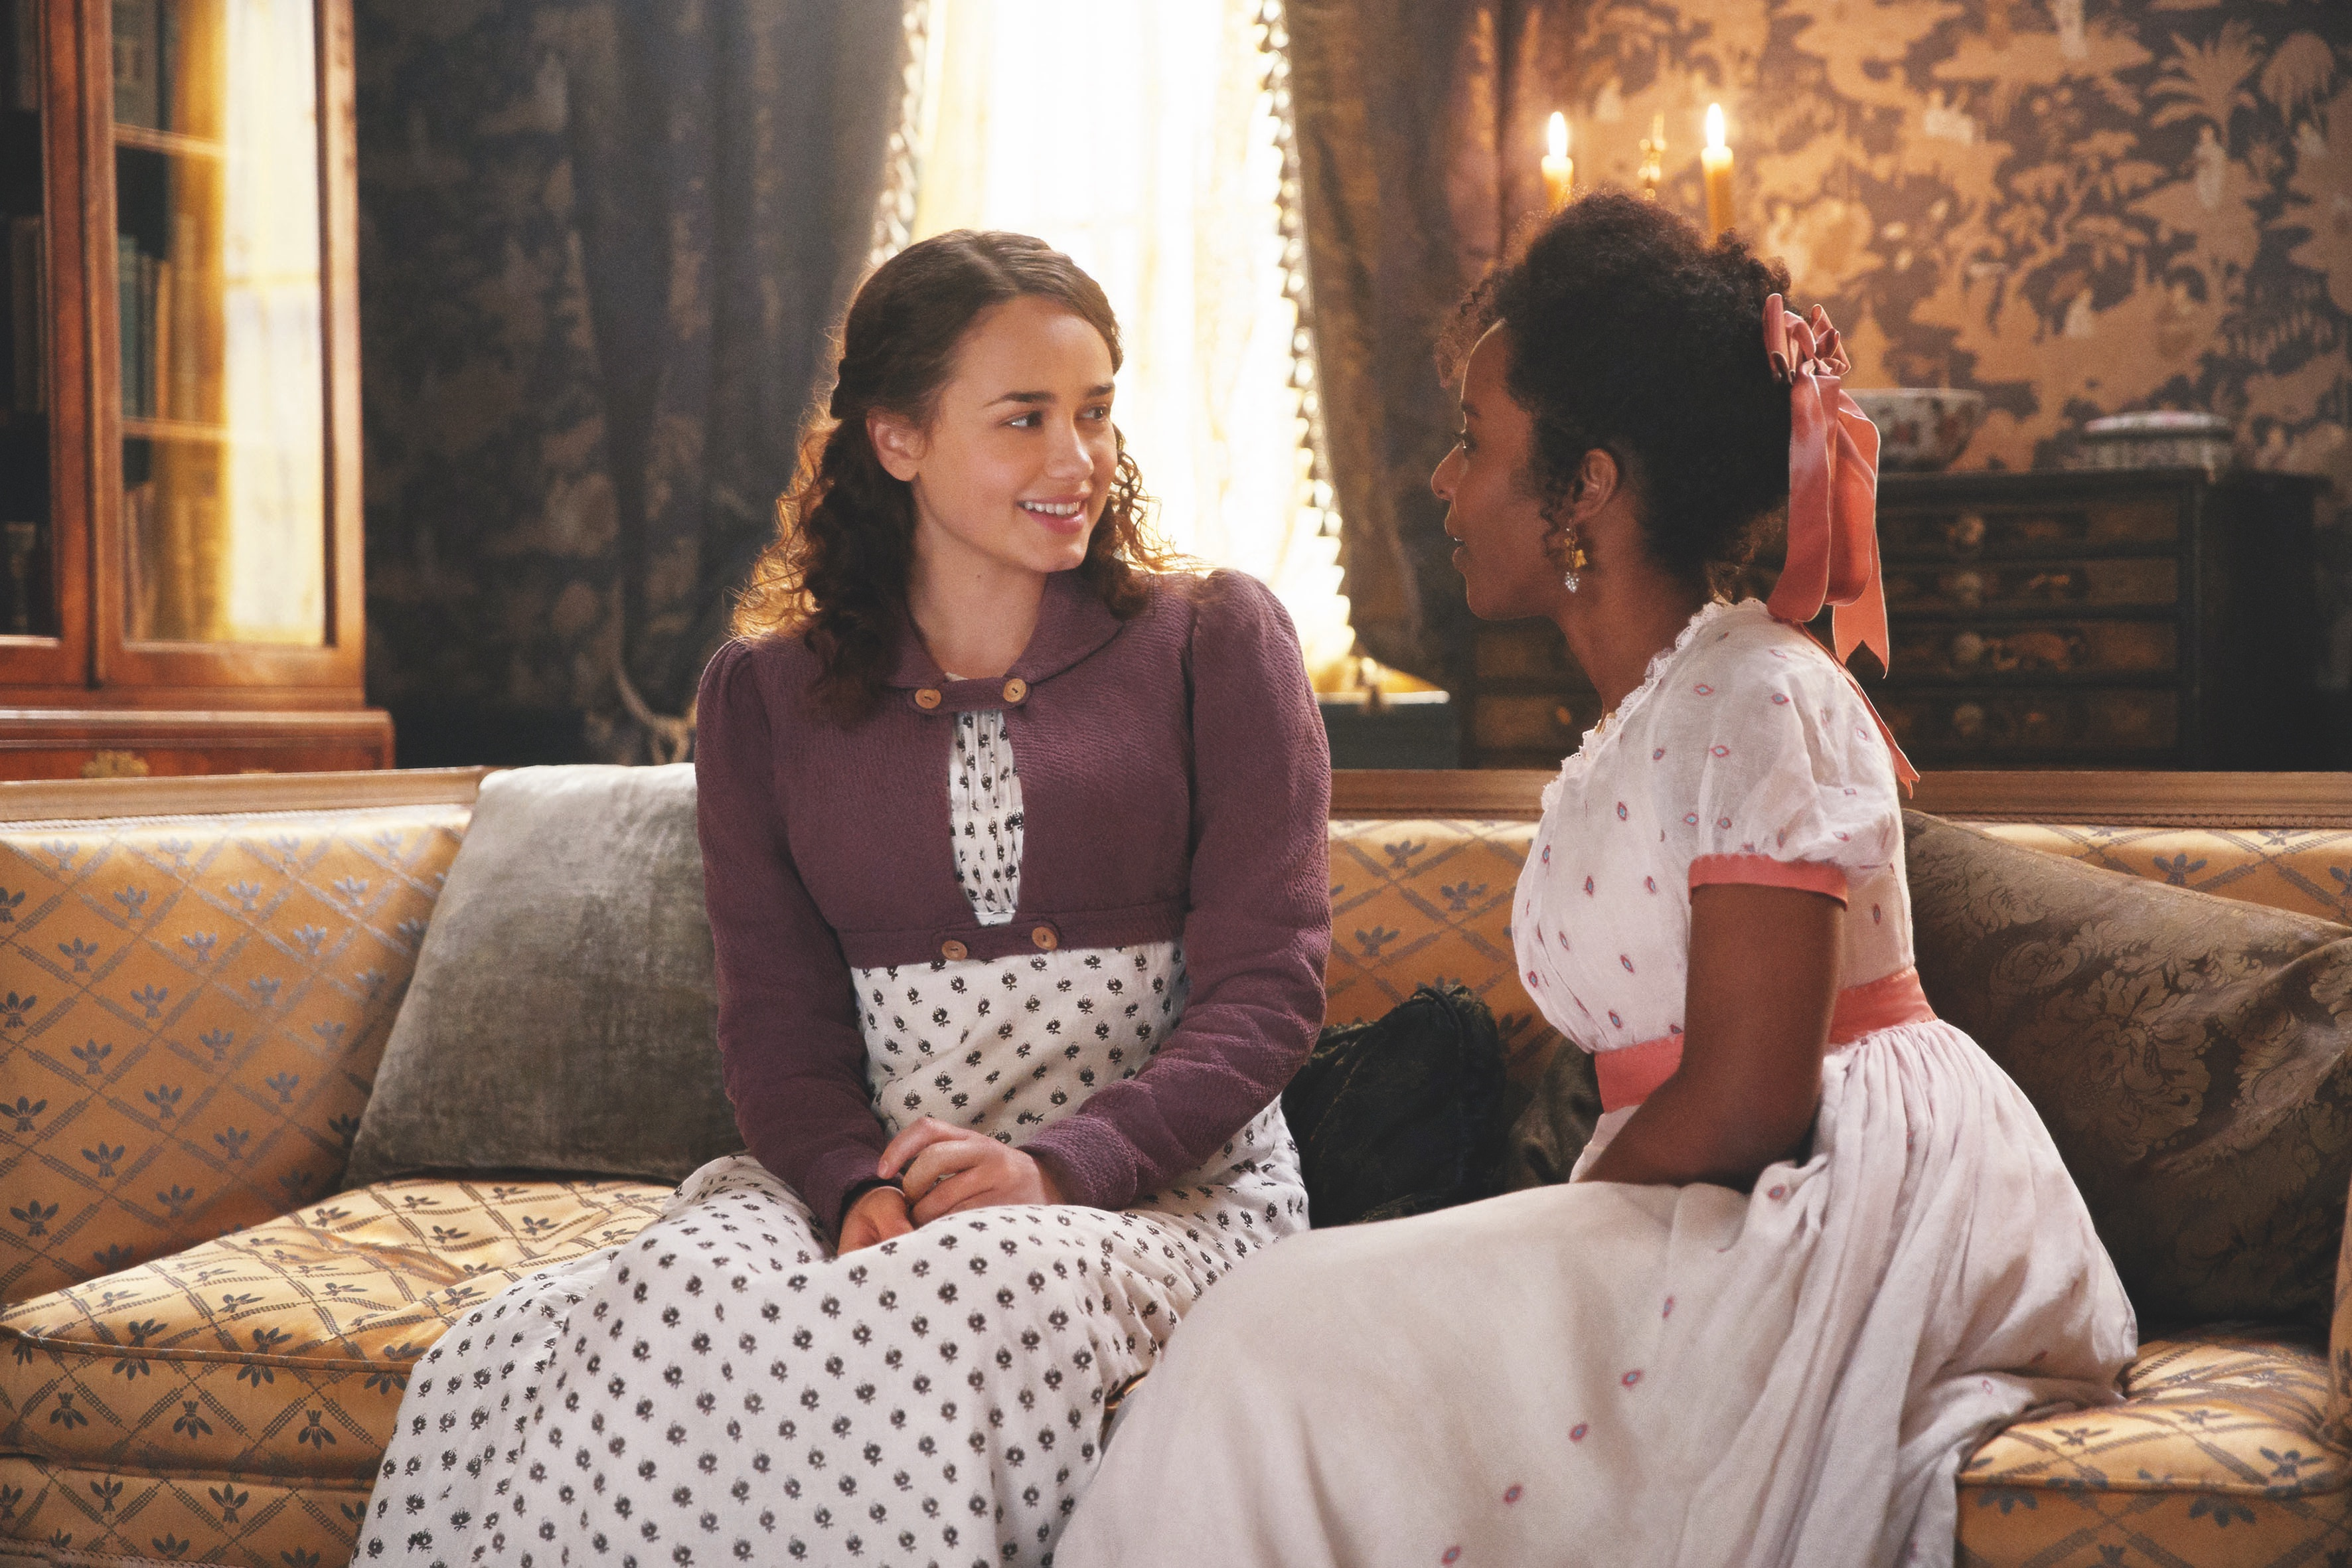 Rose Williams and Crystal Clarke sitting on a couch in 'Sanditon' Season 1